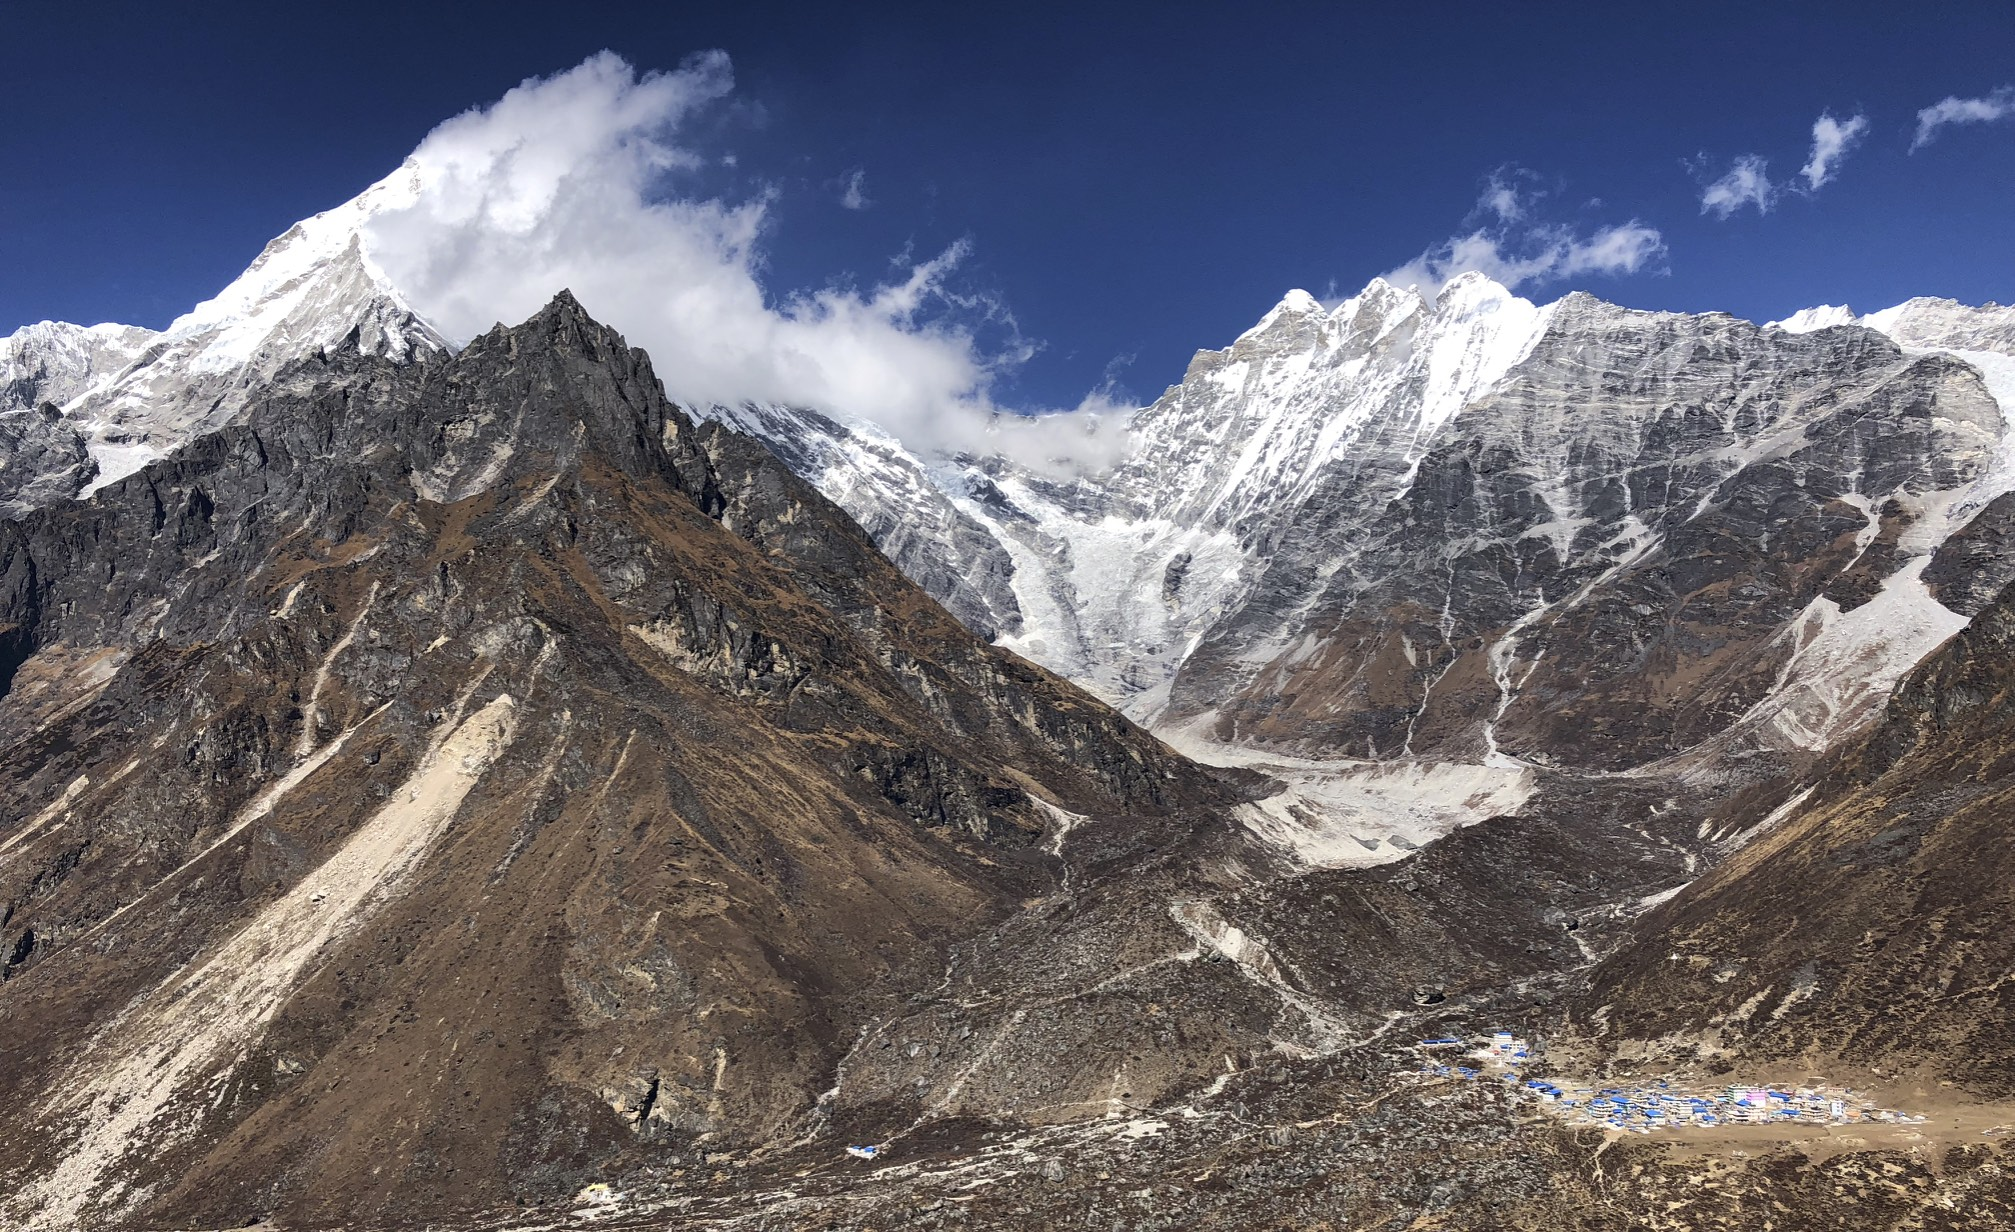 Hiking to the Ganjala Pass with Kinjang Gompa below.